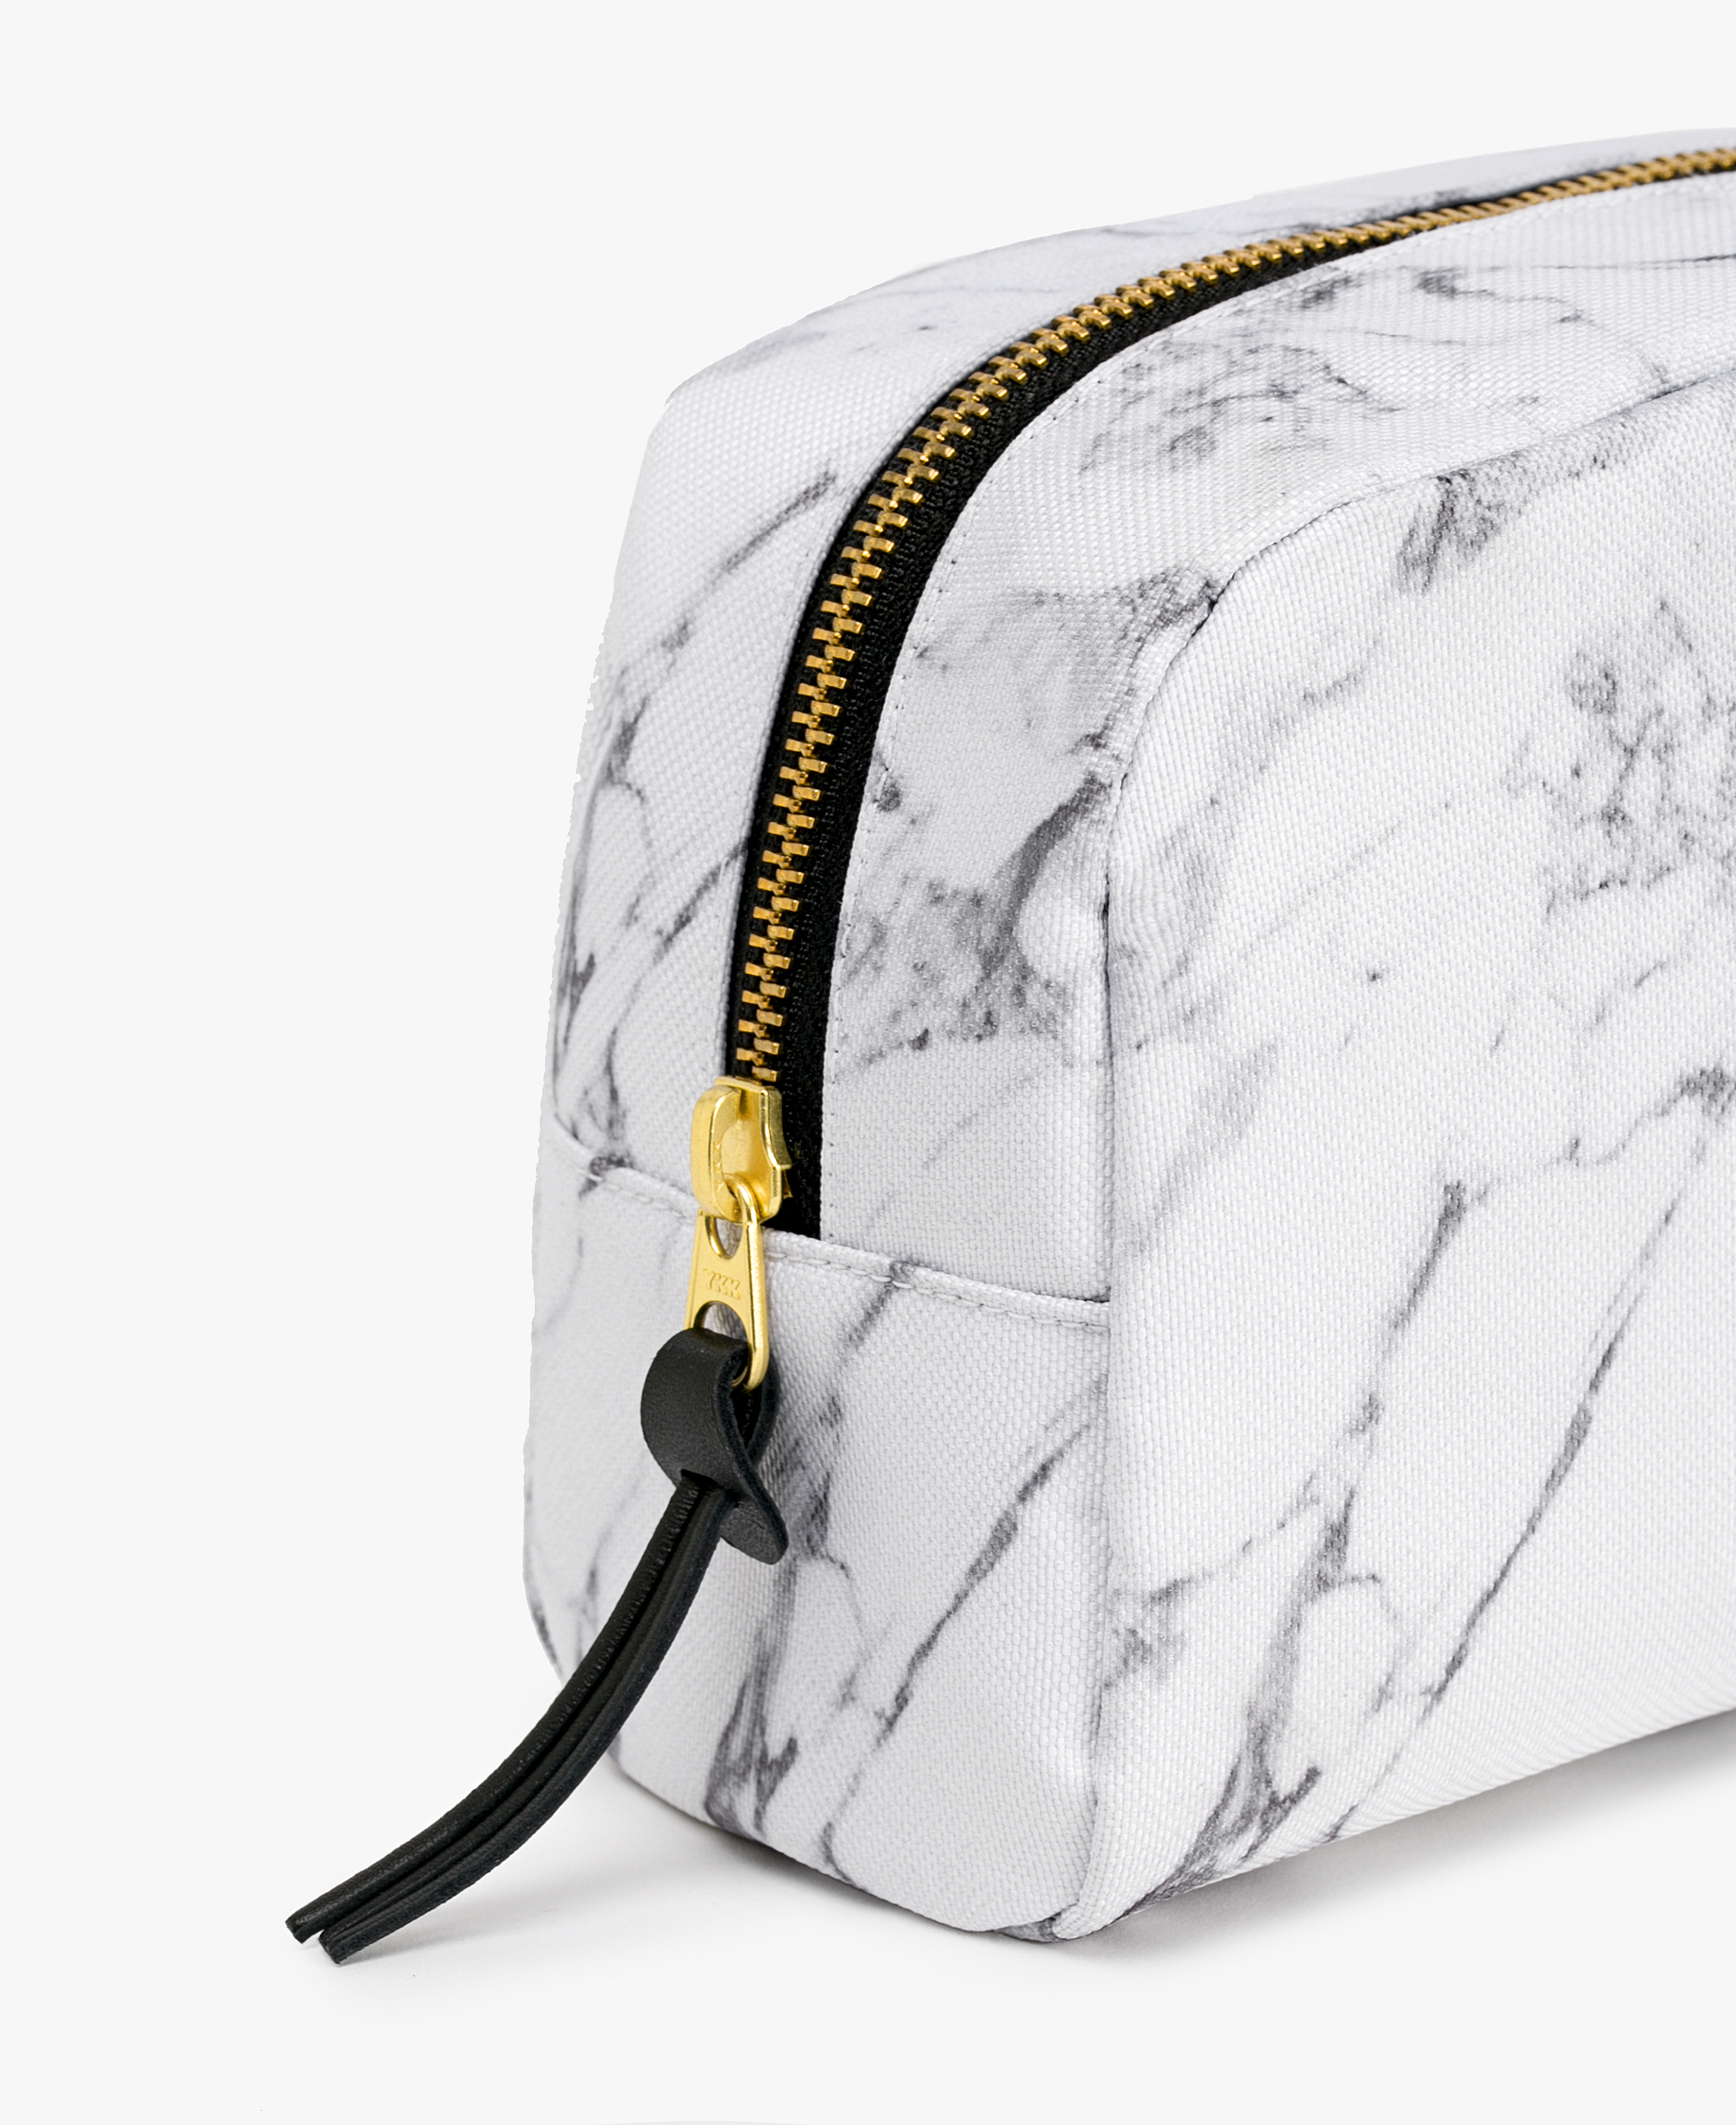 woman's toiletry bag in white with golden zipper